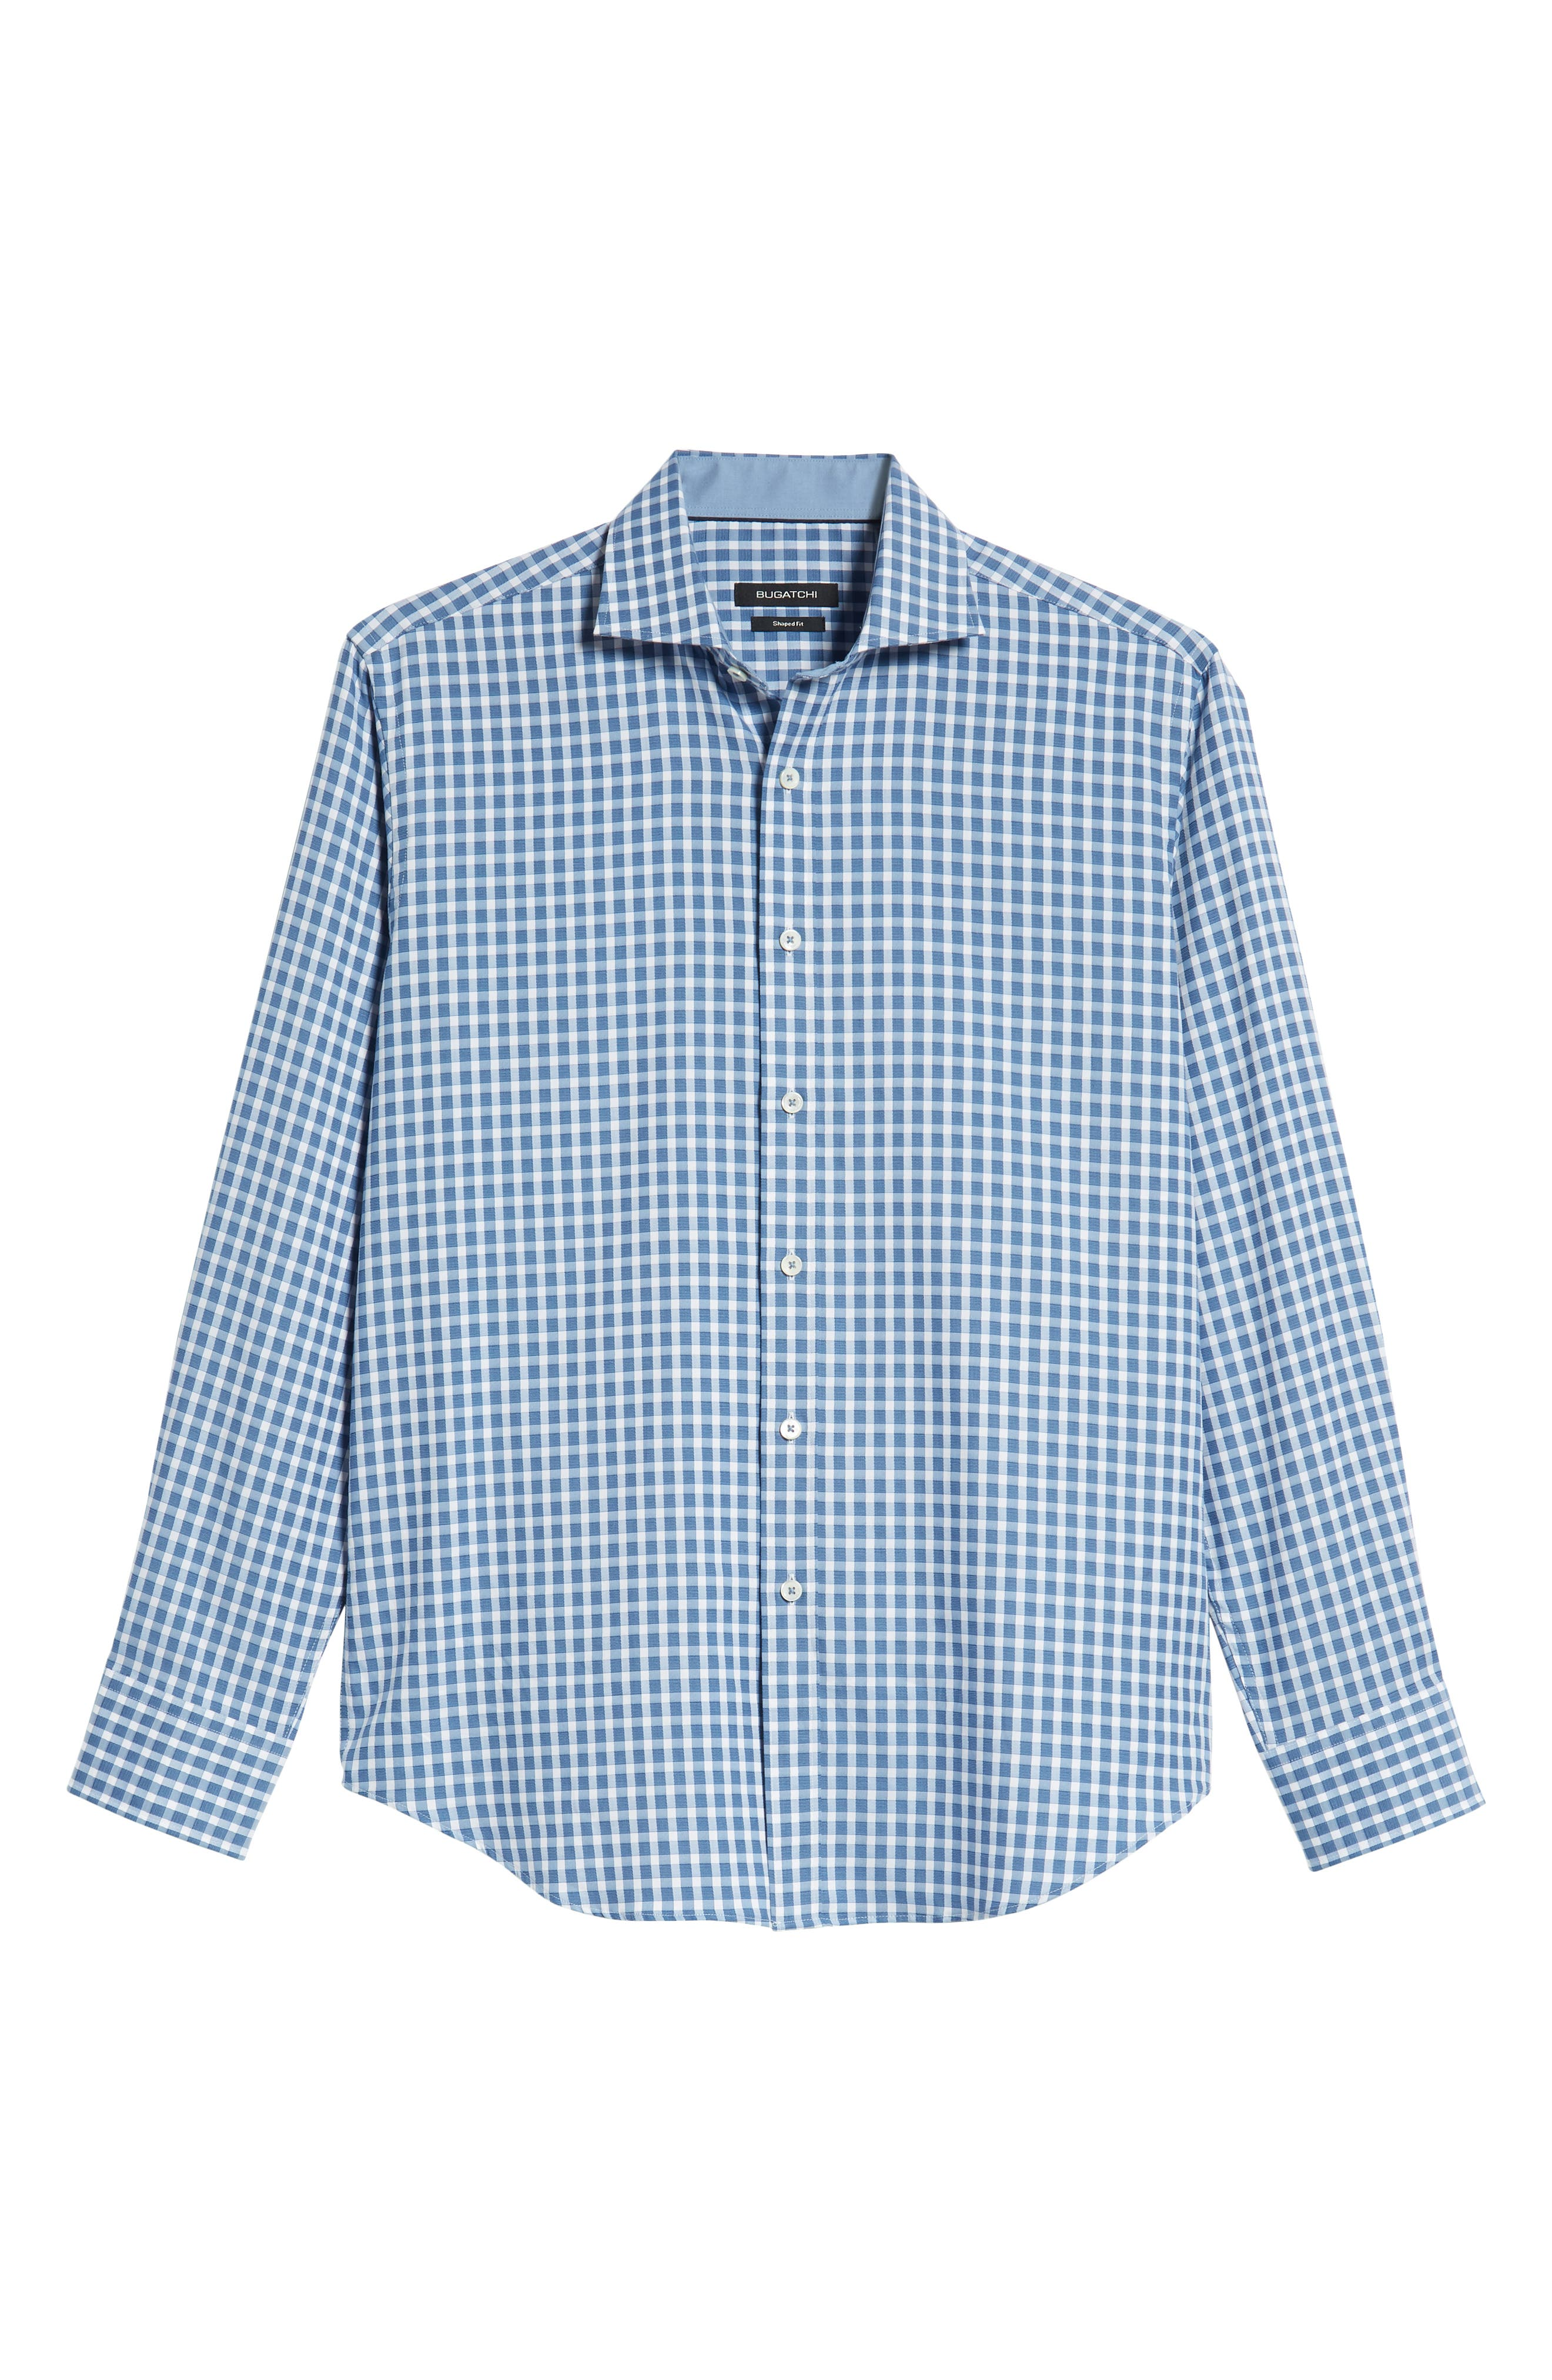 Shaped Fit Check Sport Shirt,                             Alternate thumbnail 5, color,                             AIR BLUE